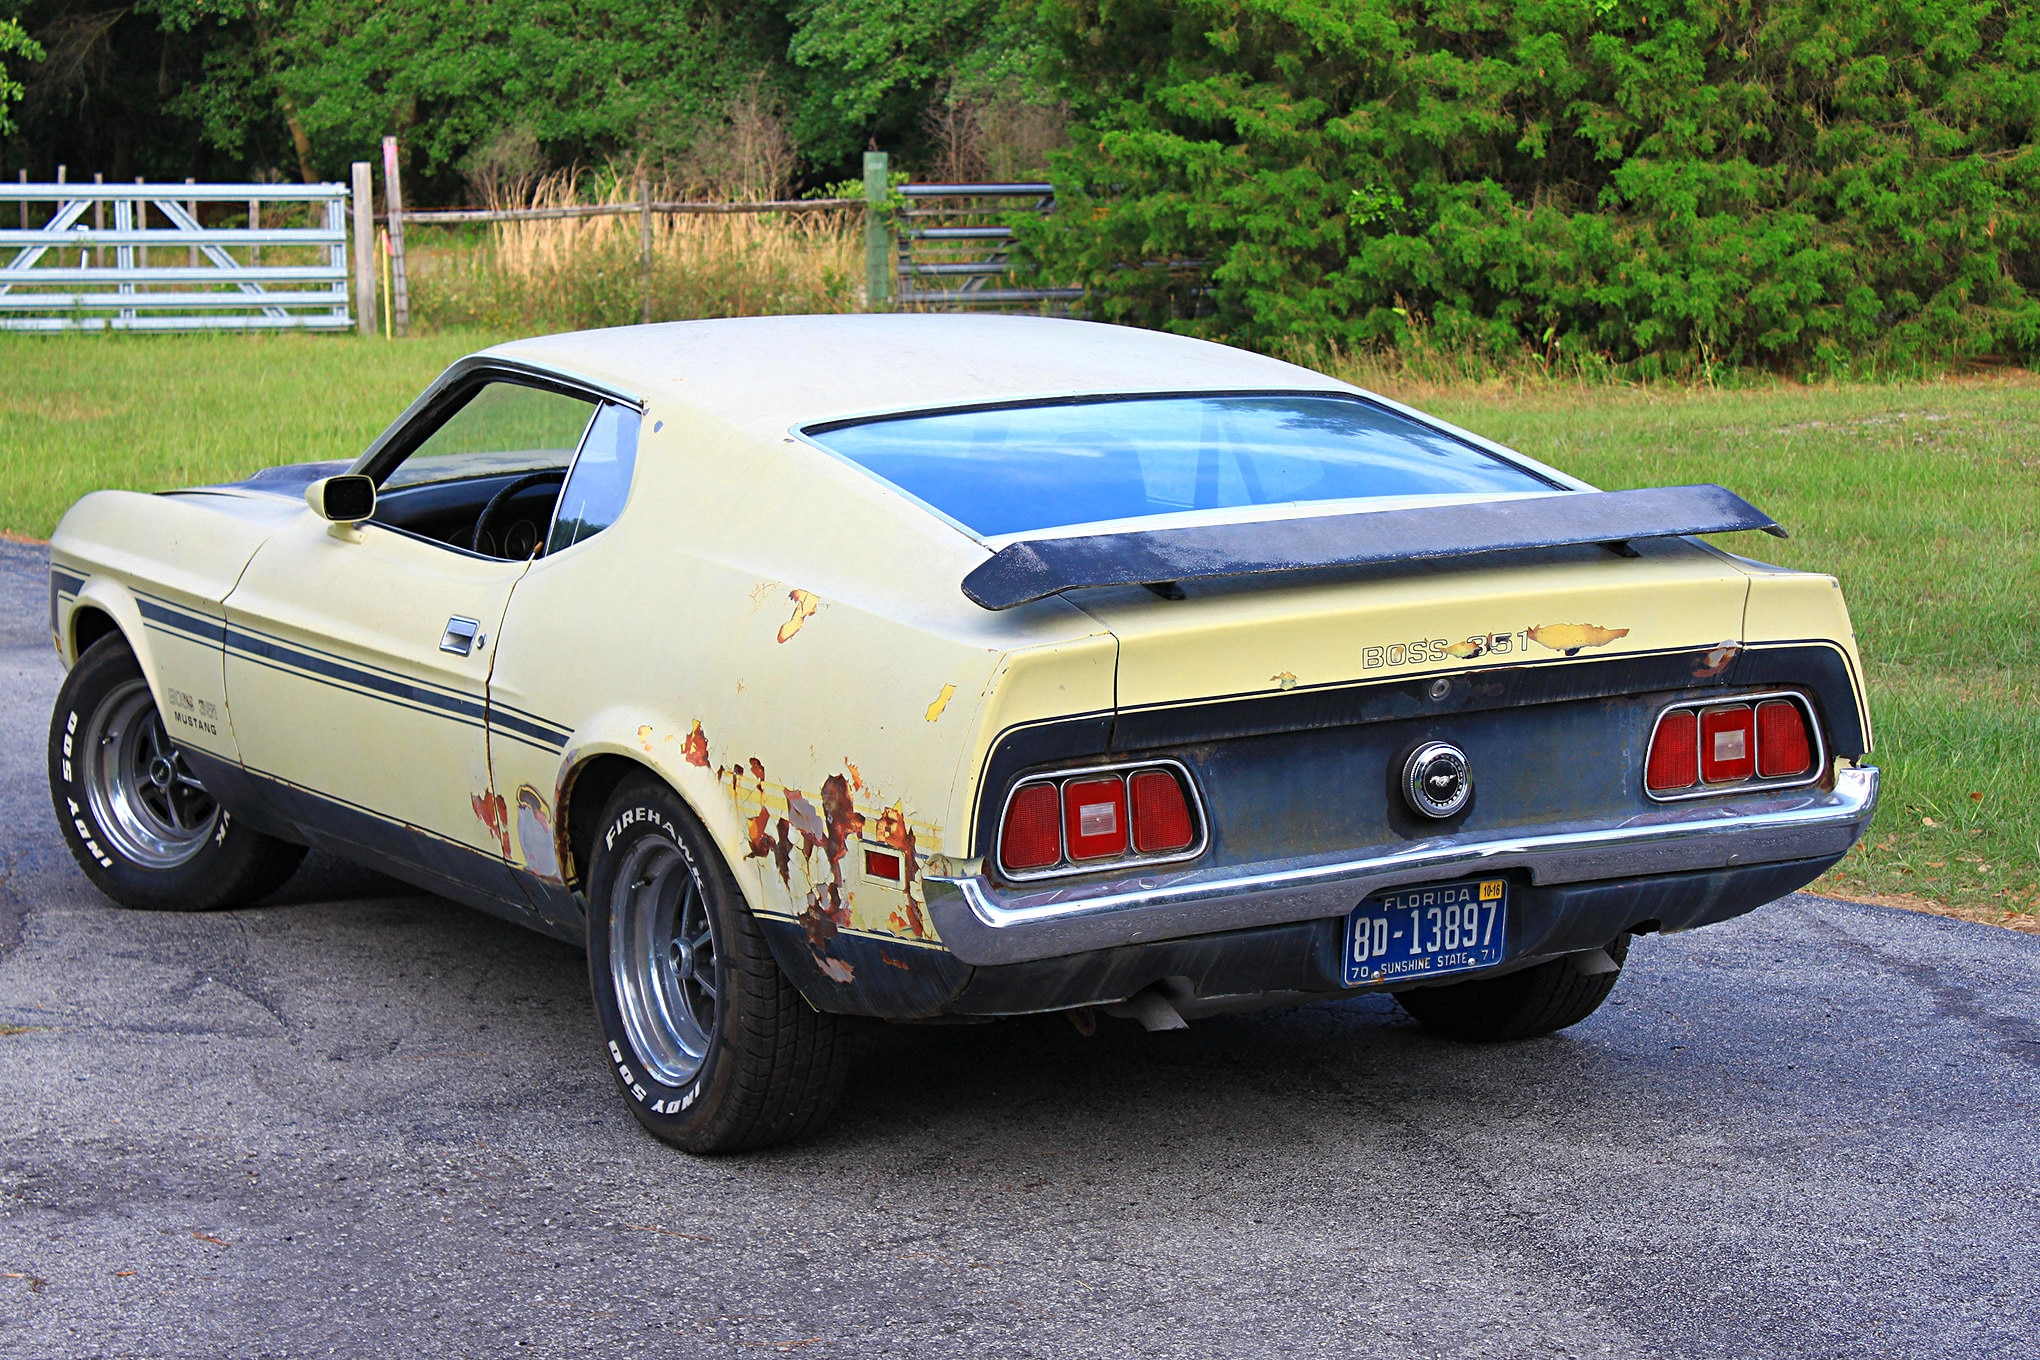 13 1971 ford mustang boss 351 yellow rear three quarter